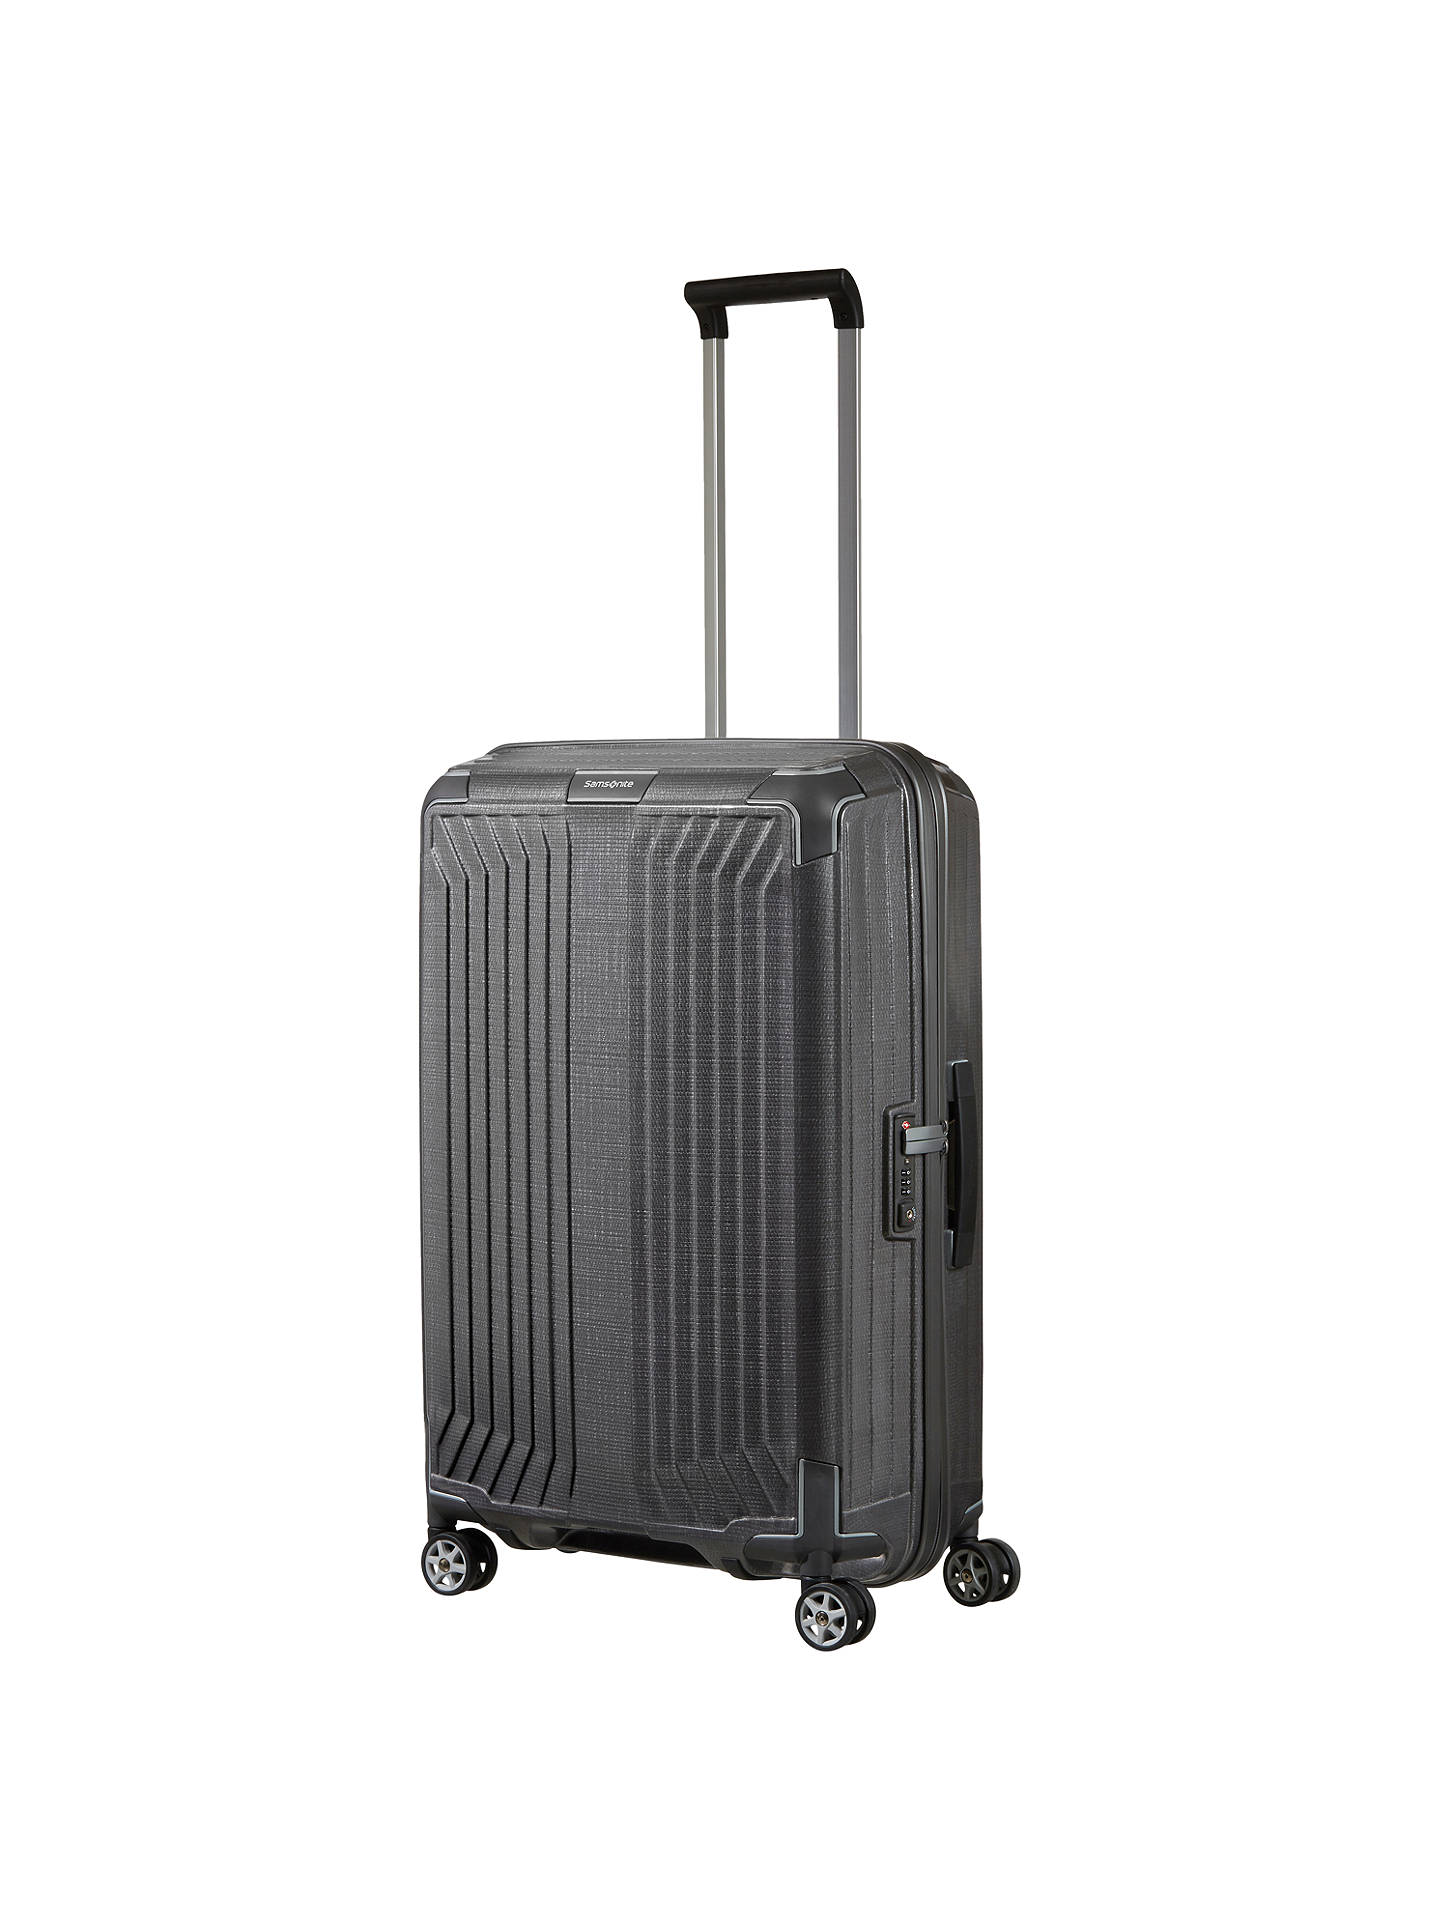 samsonite lite box 69cm 4 spinner wheel suitcase at john. Black Bedroom Furniture Sets. Home Design Ideas